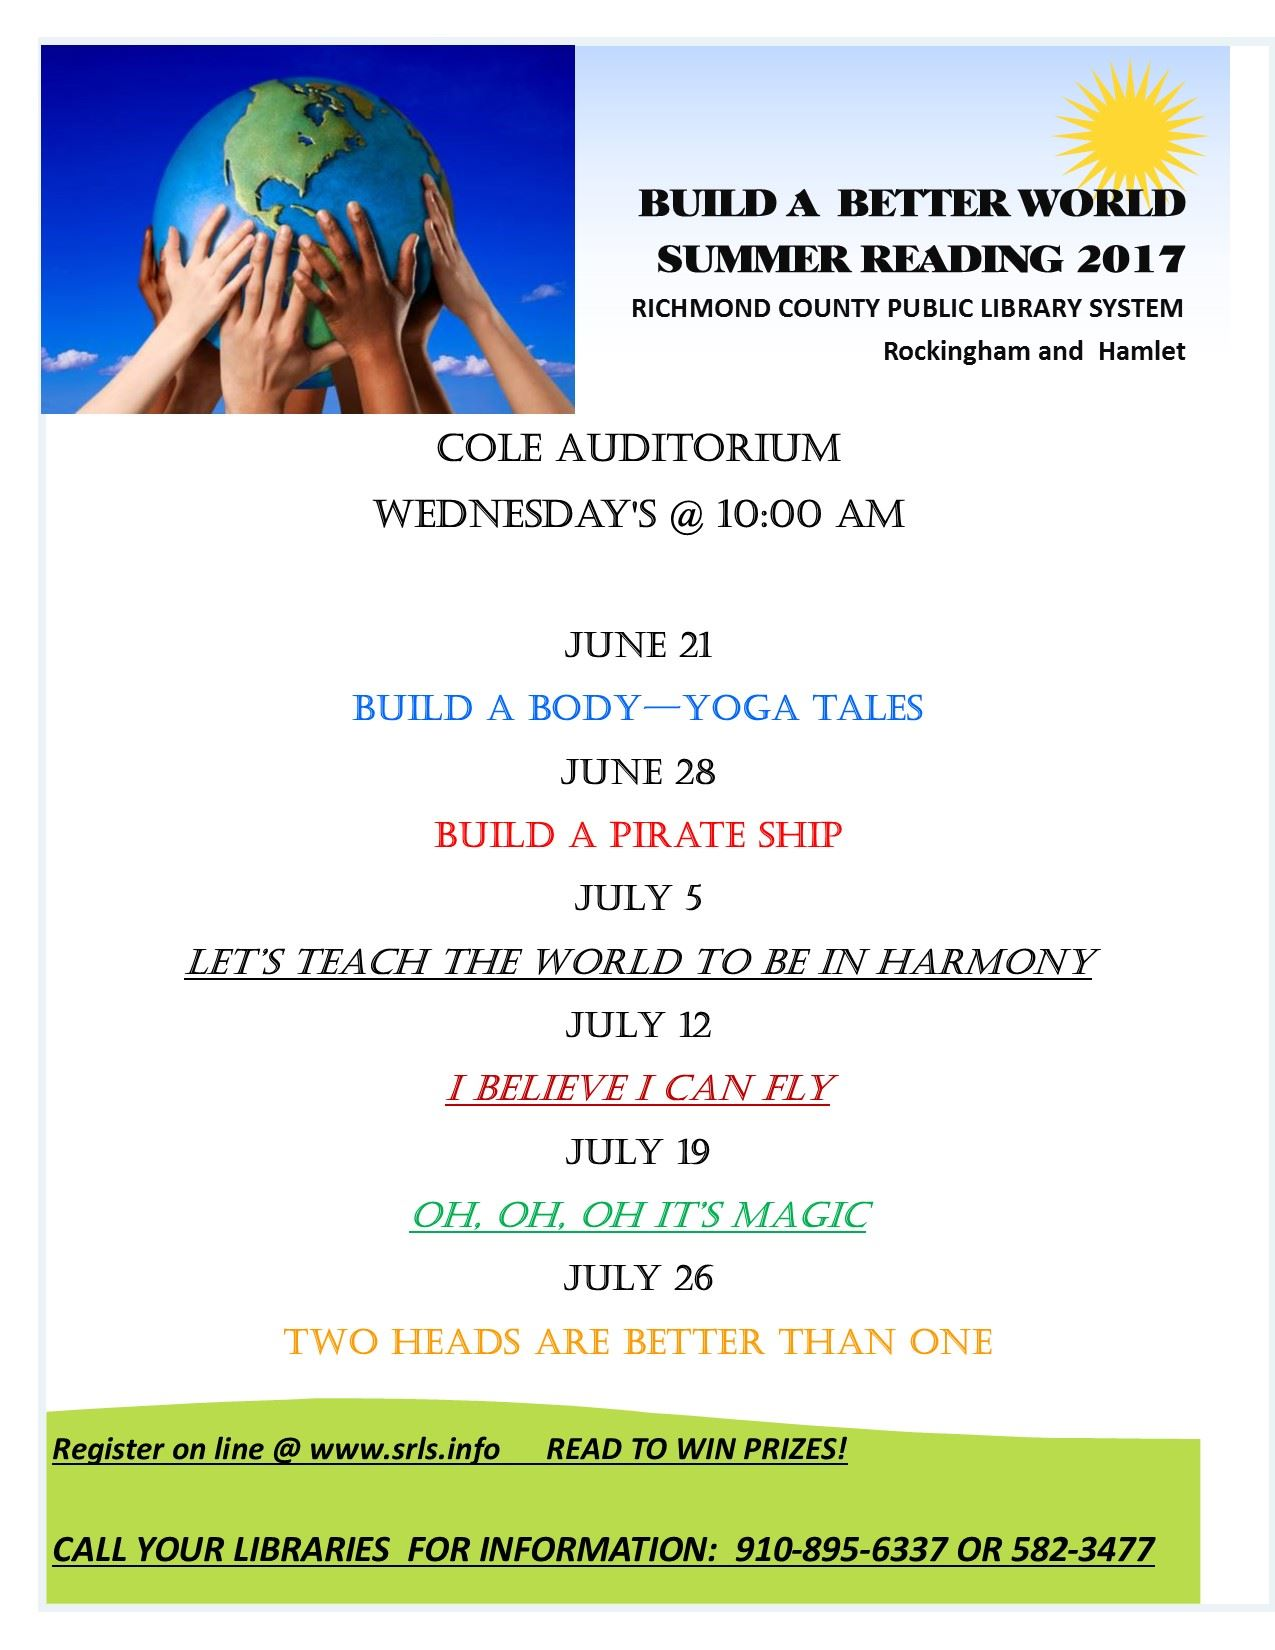 Summer Reading for Leath and Hamlet Libraries